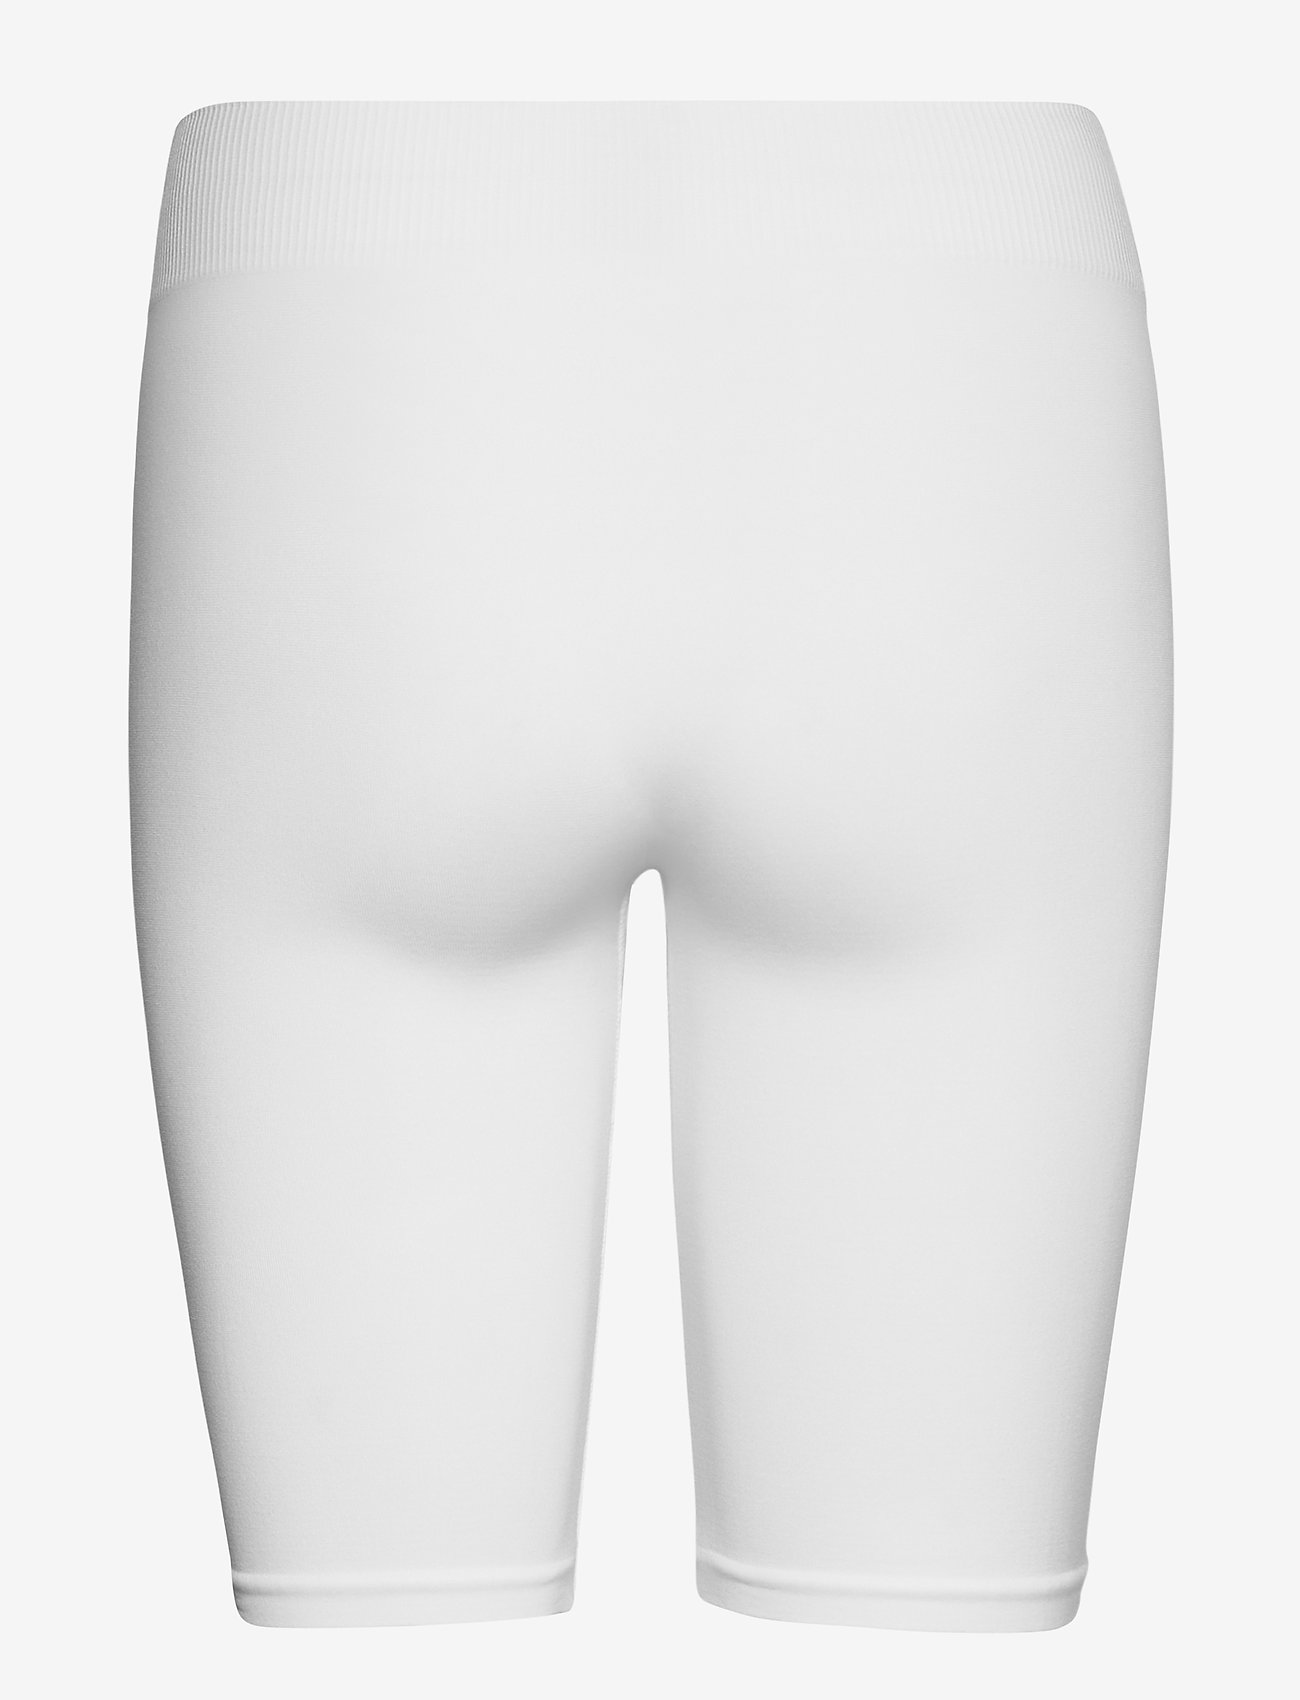 Pieces - LONDON SHORTS/12 - bottoms - bright white - 1